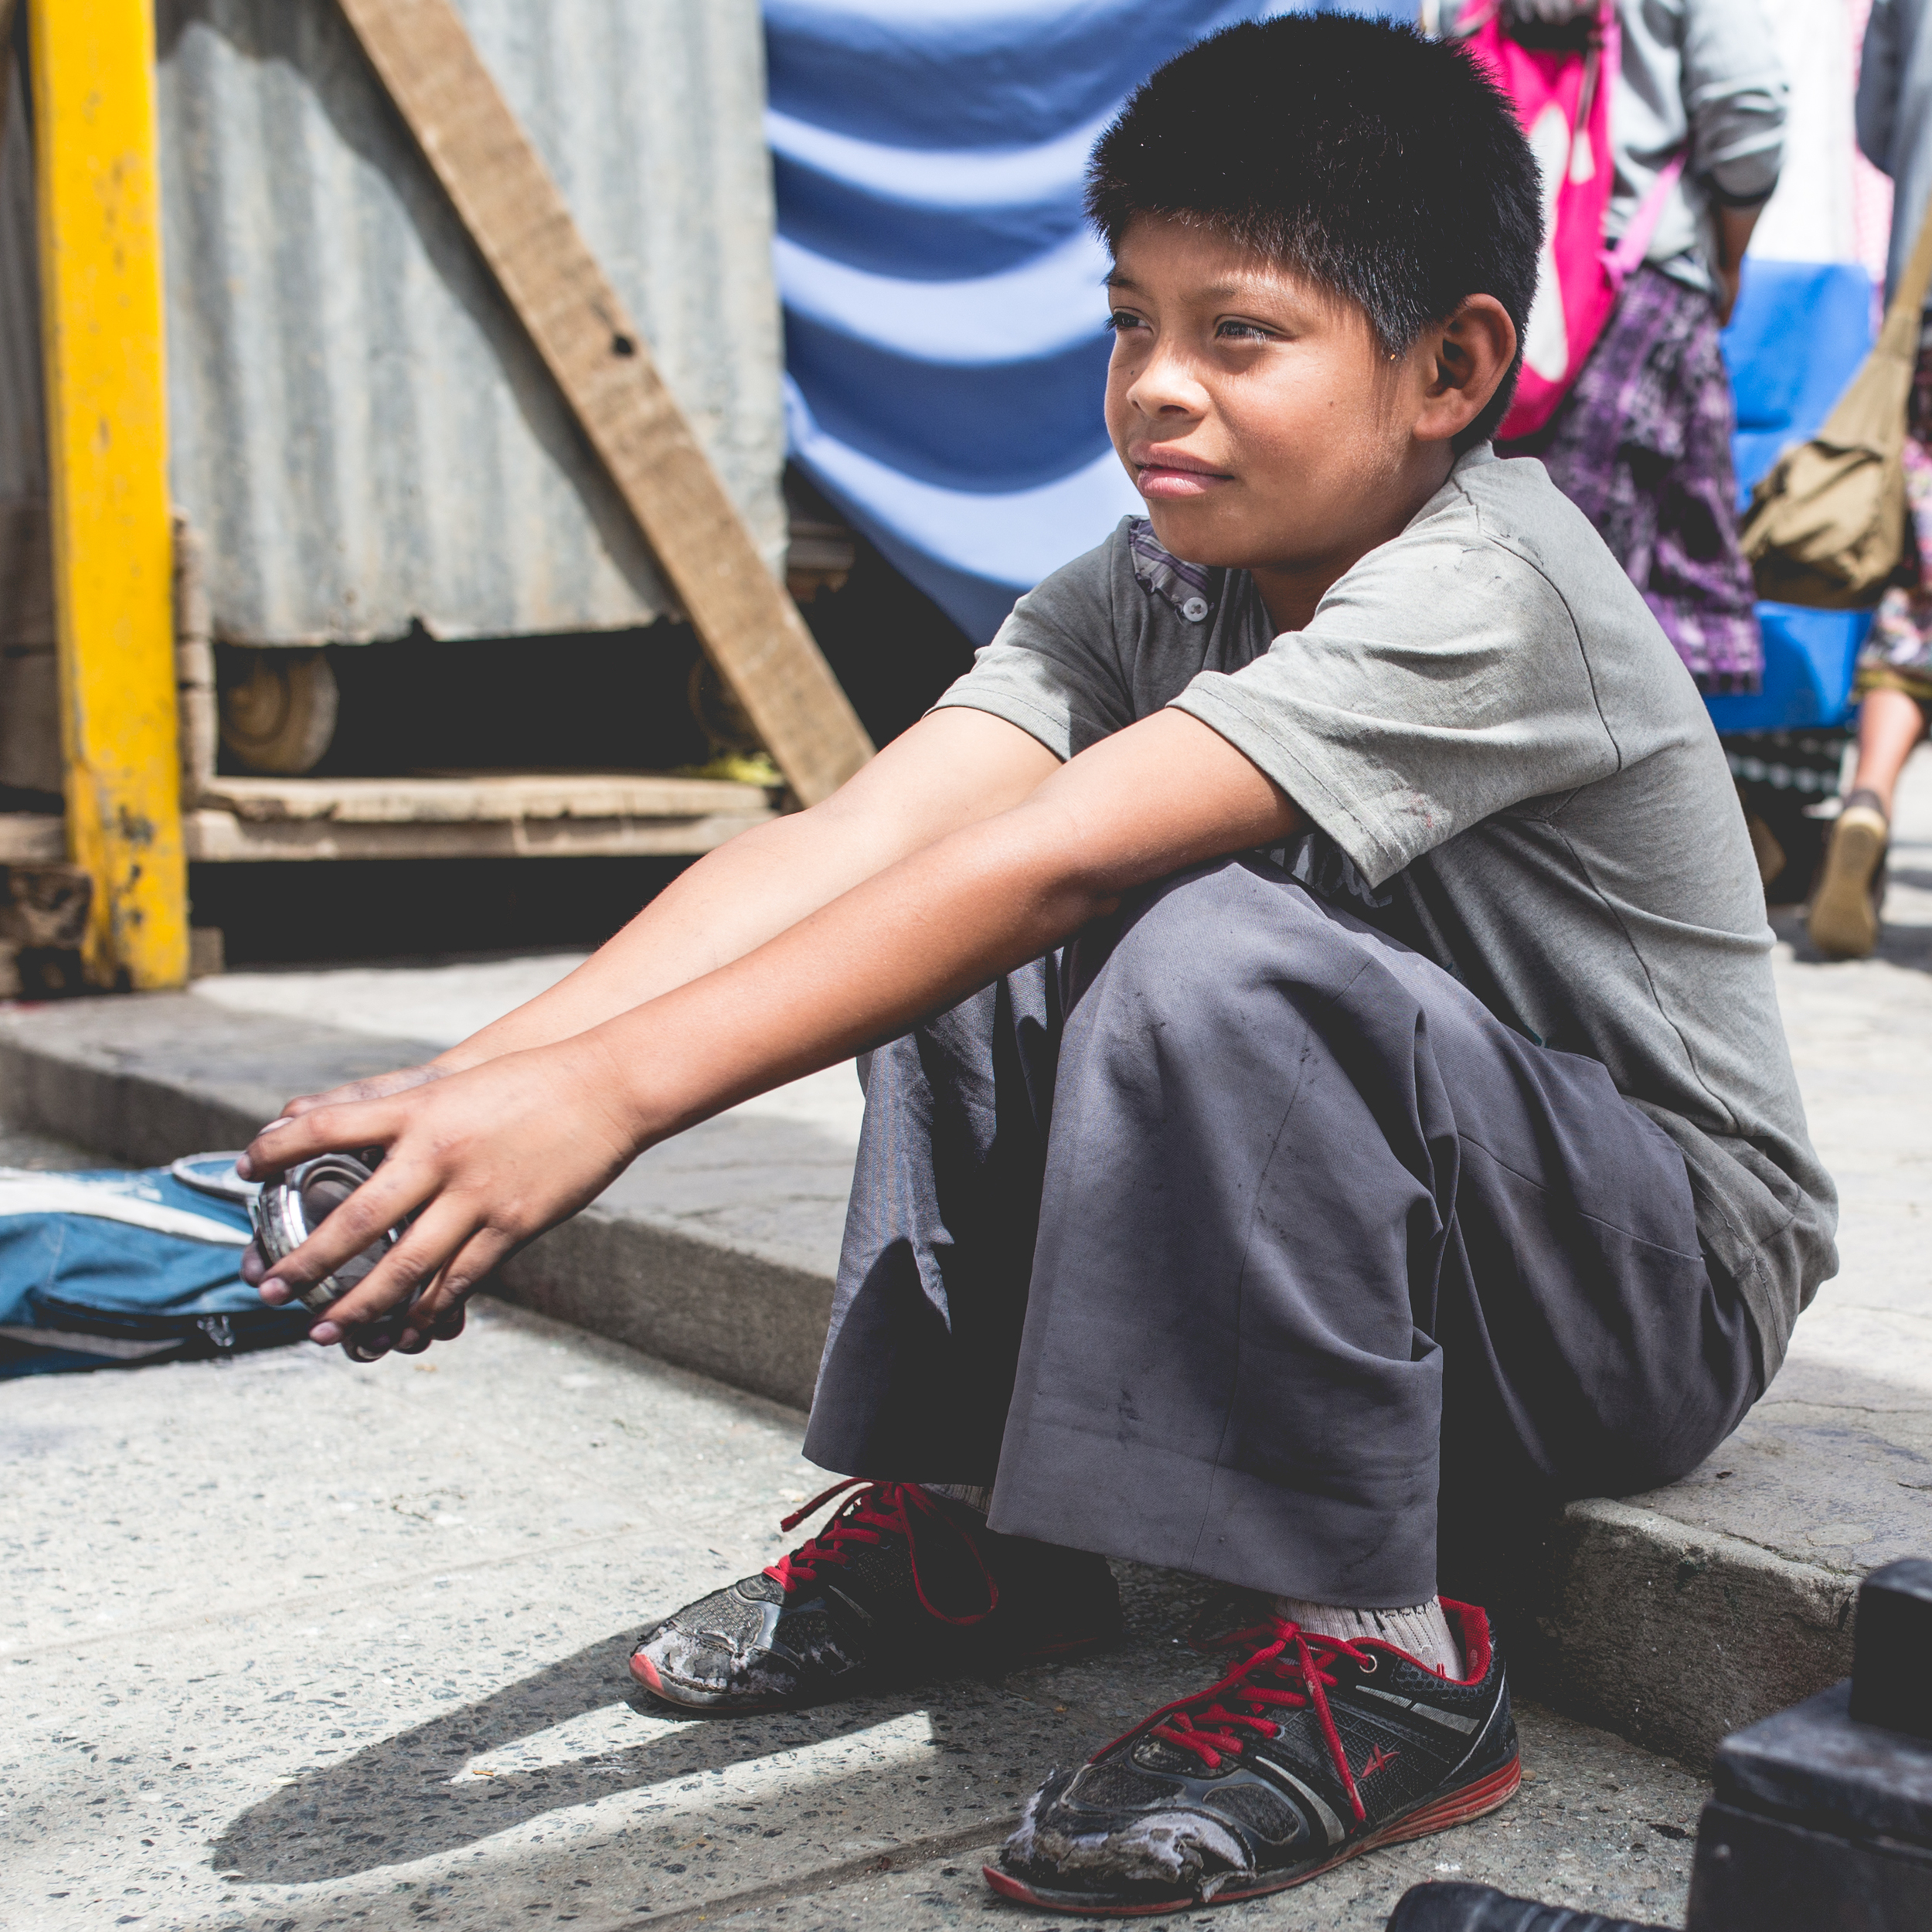 Edgar, age13, used to shine shoes in the plaza to make money. Now, thanks to your support, he goes to school.